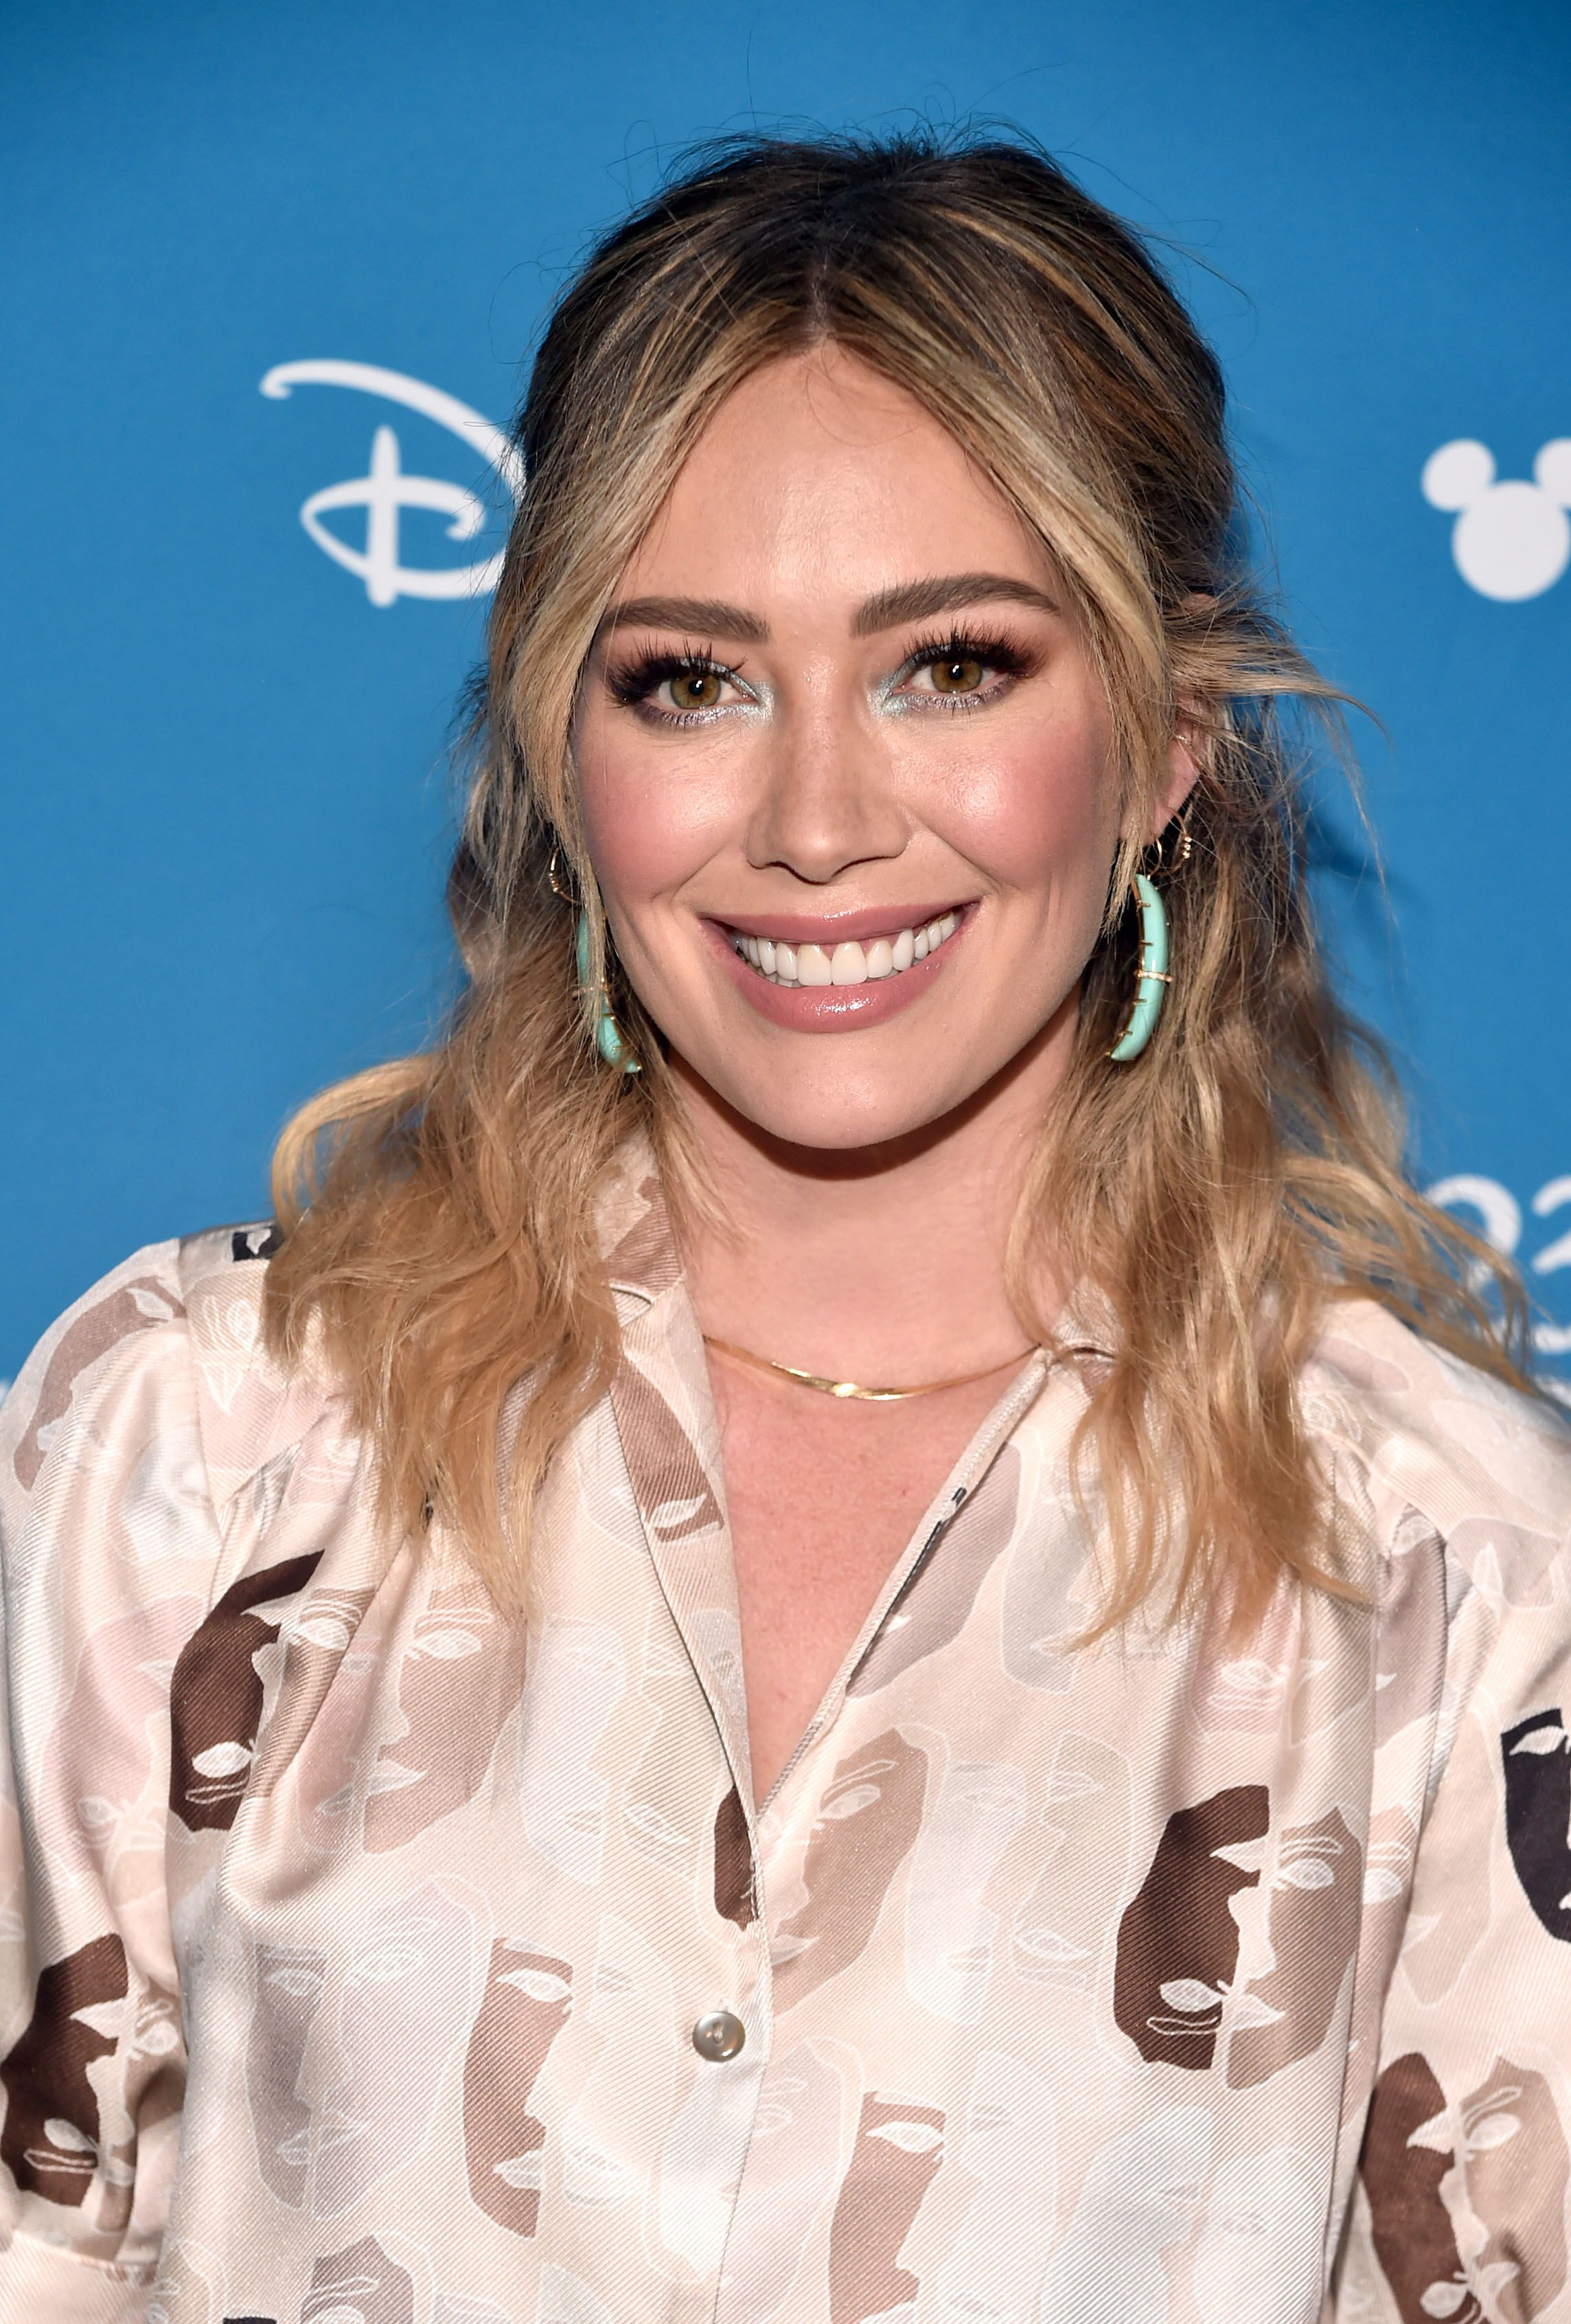 Lizzie McGuire is returning to our TV screens as a 30-year-old